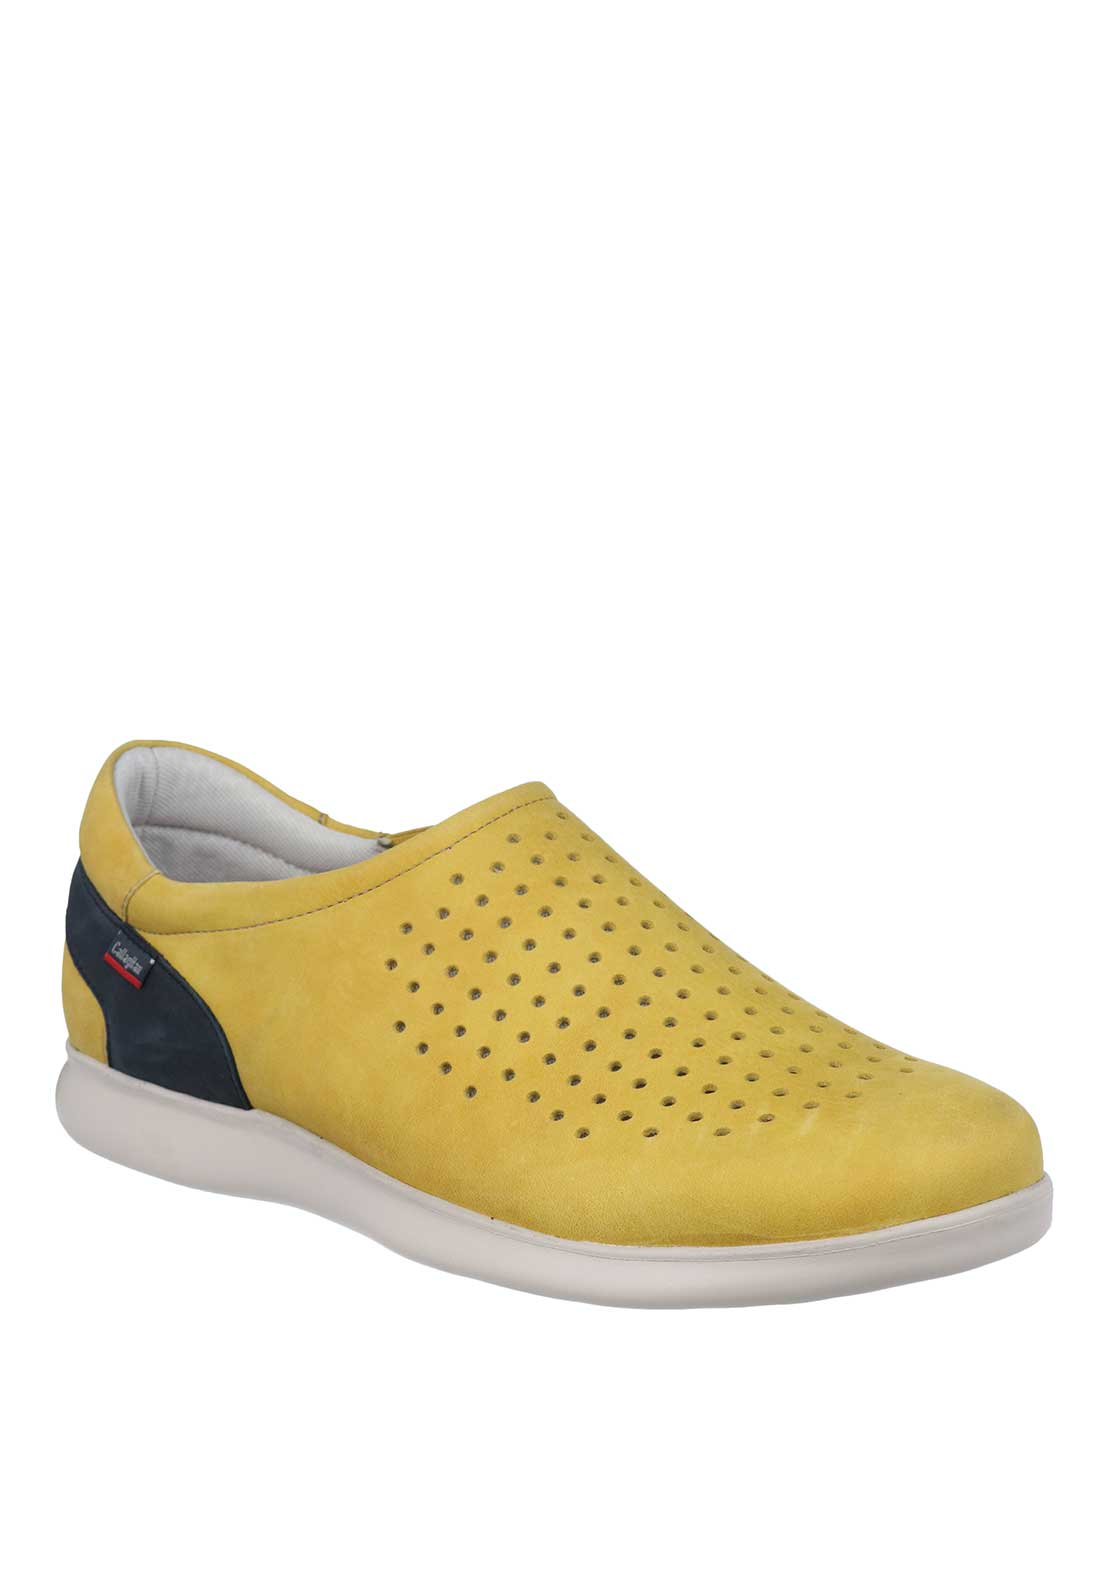 Callaghan Perforated Suede Slip On Comfort Shoes, Yellow